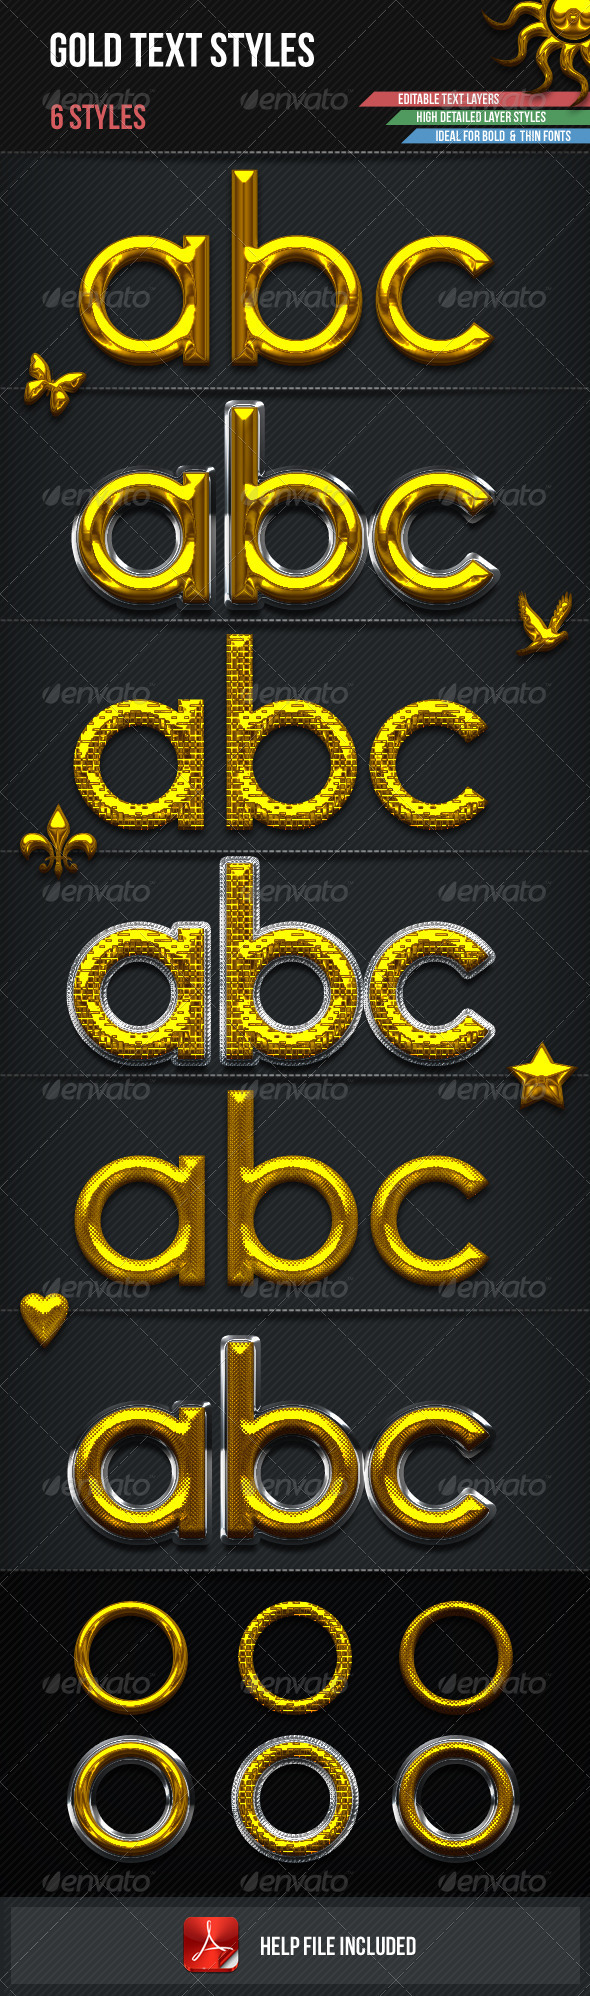 GraphicRiver Gold Text Styles 2793386